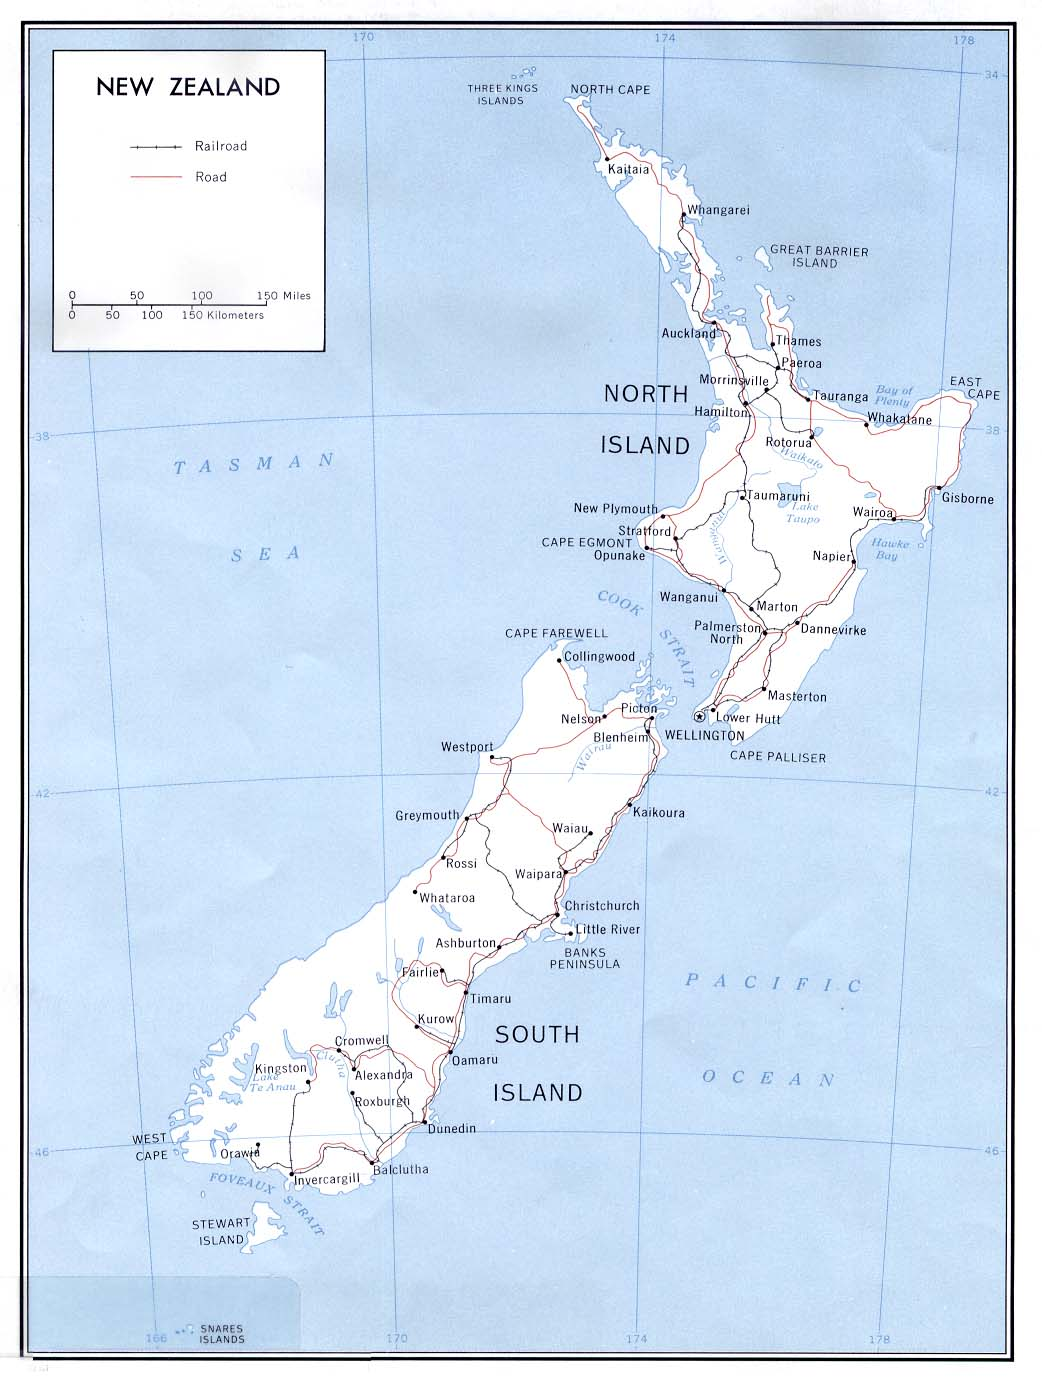 download free new zealand auckland islands maps